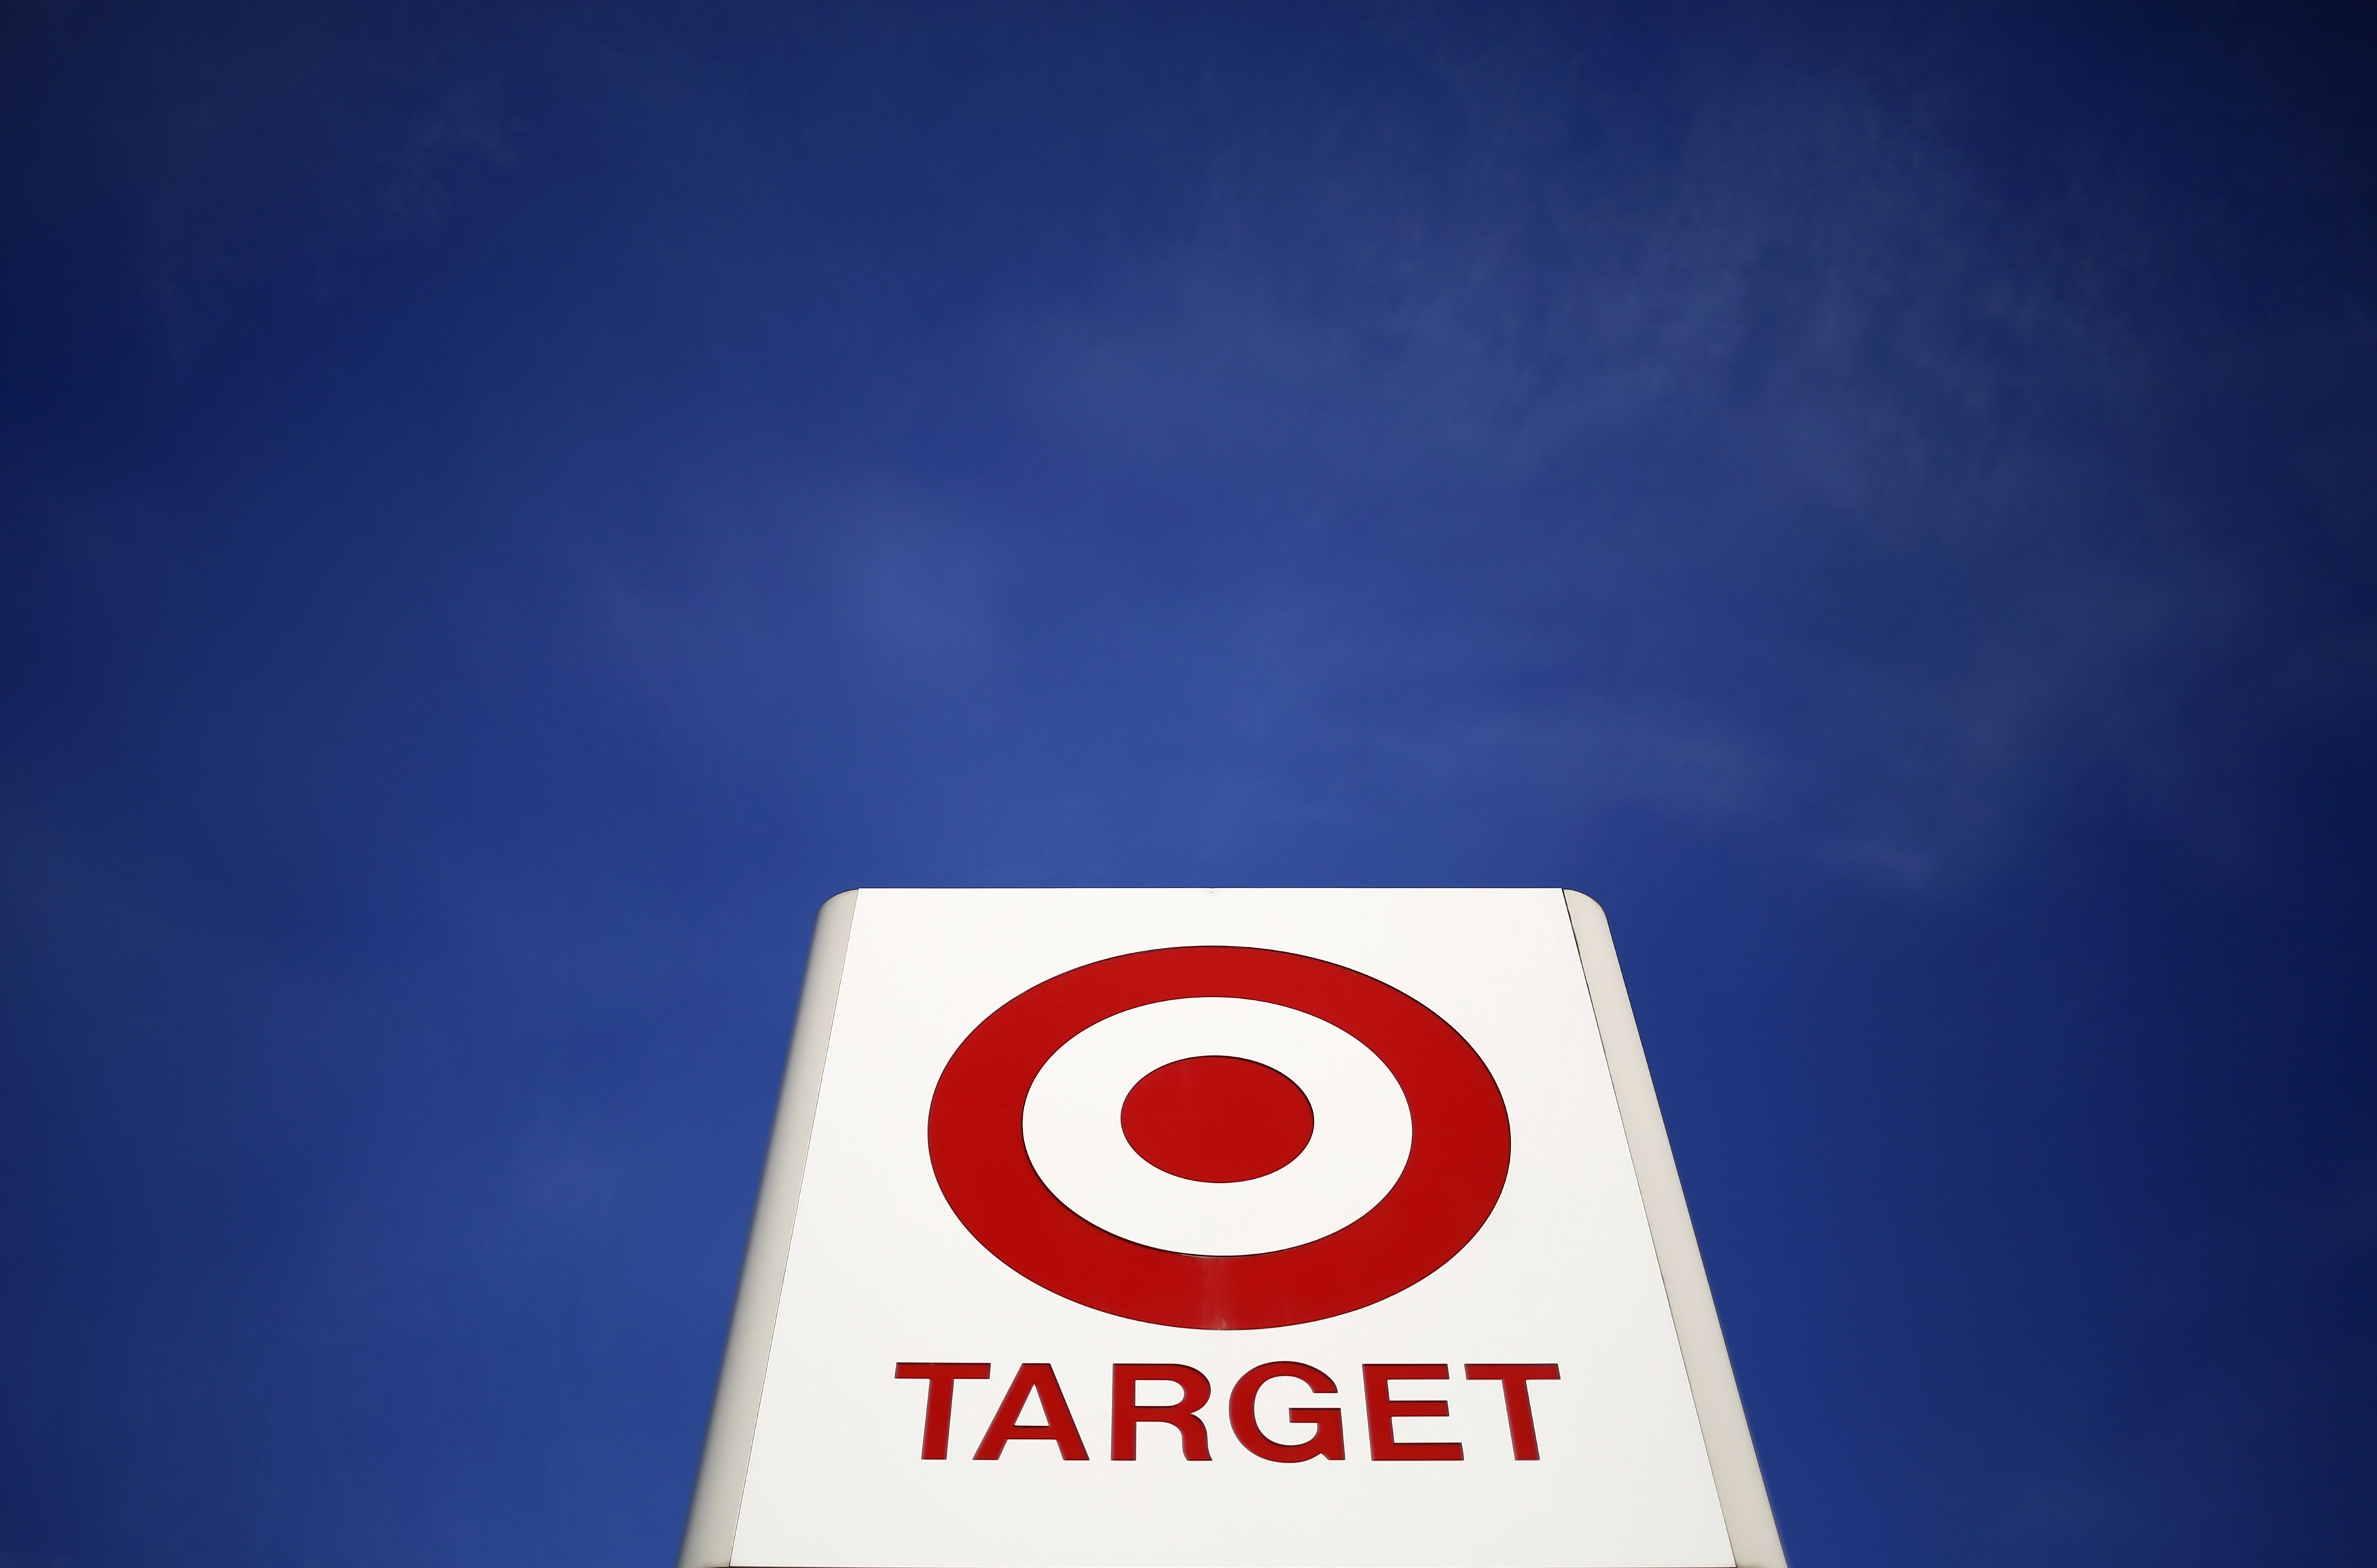 A sign for a Target store is seen in the Chicago suburb of Evanston, Illinois on Feb. 10, 2015.